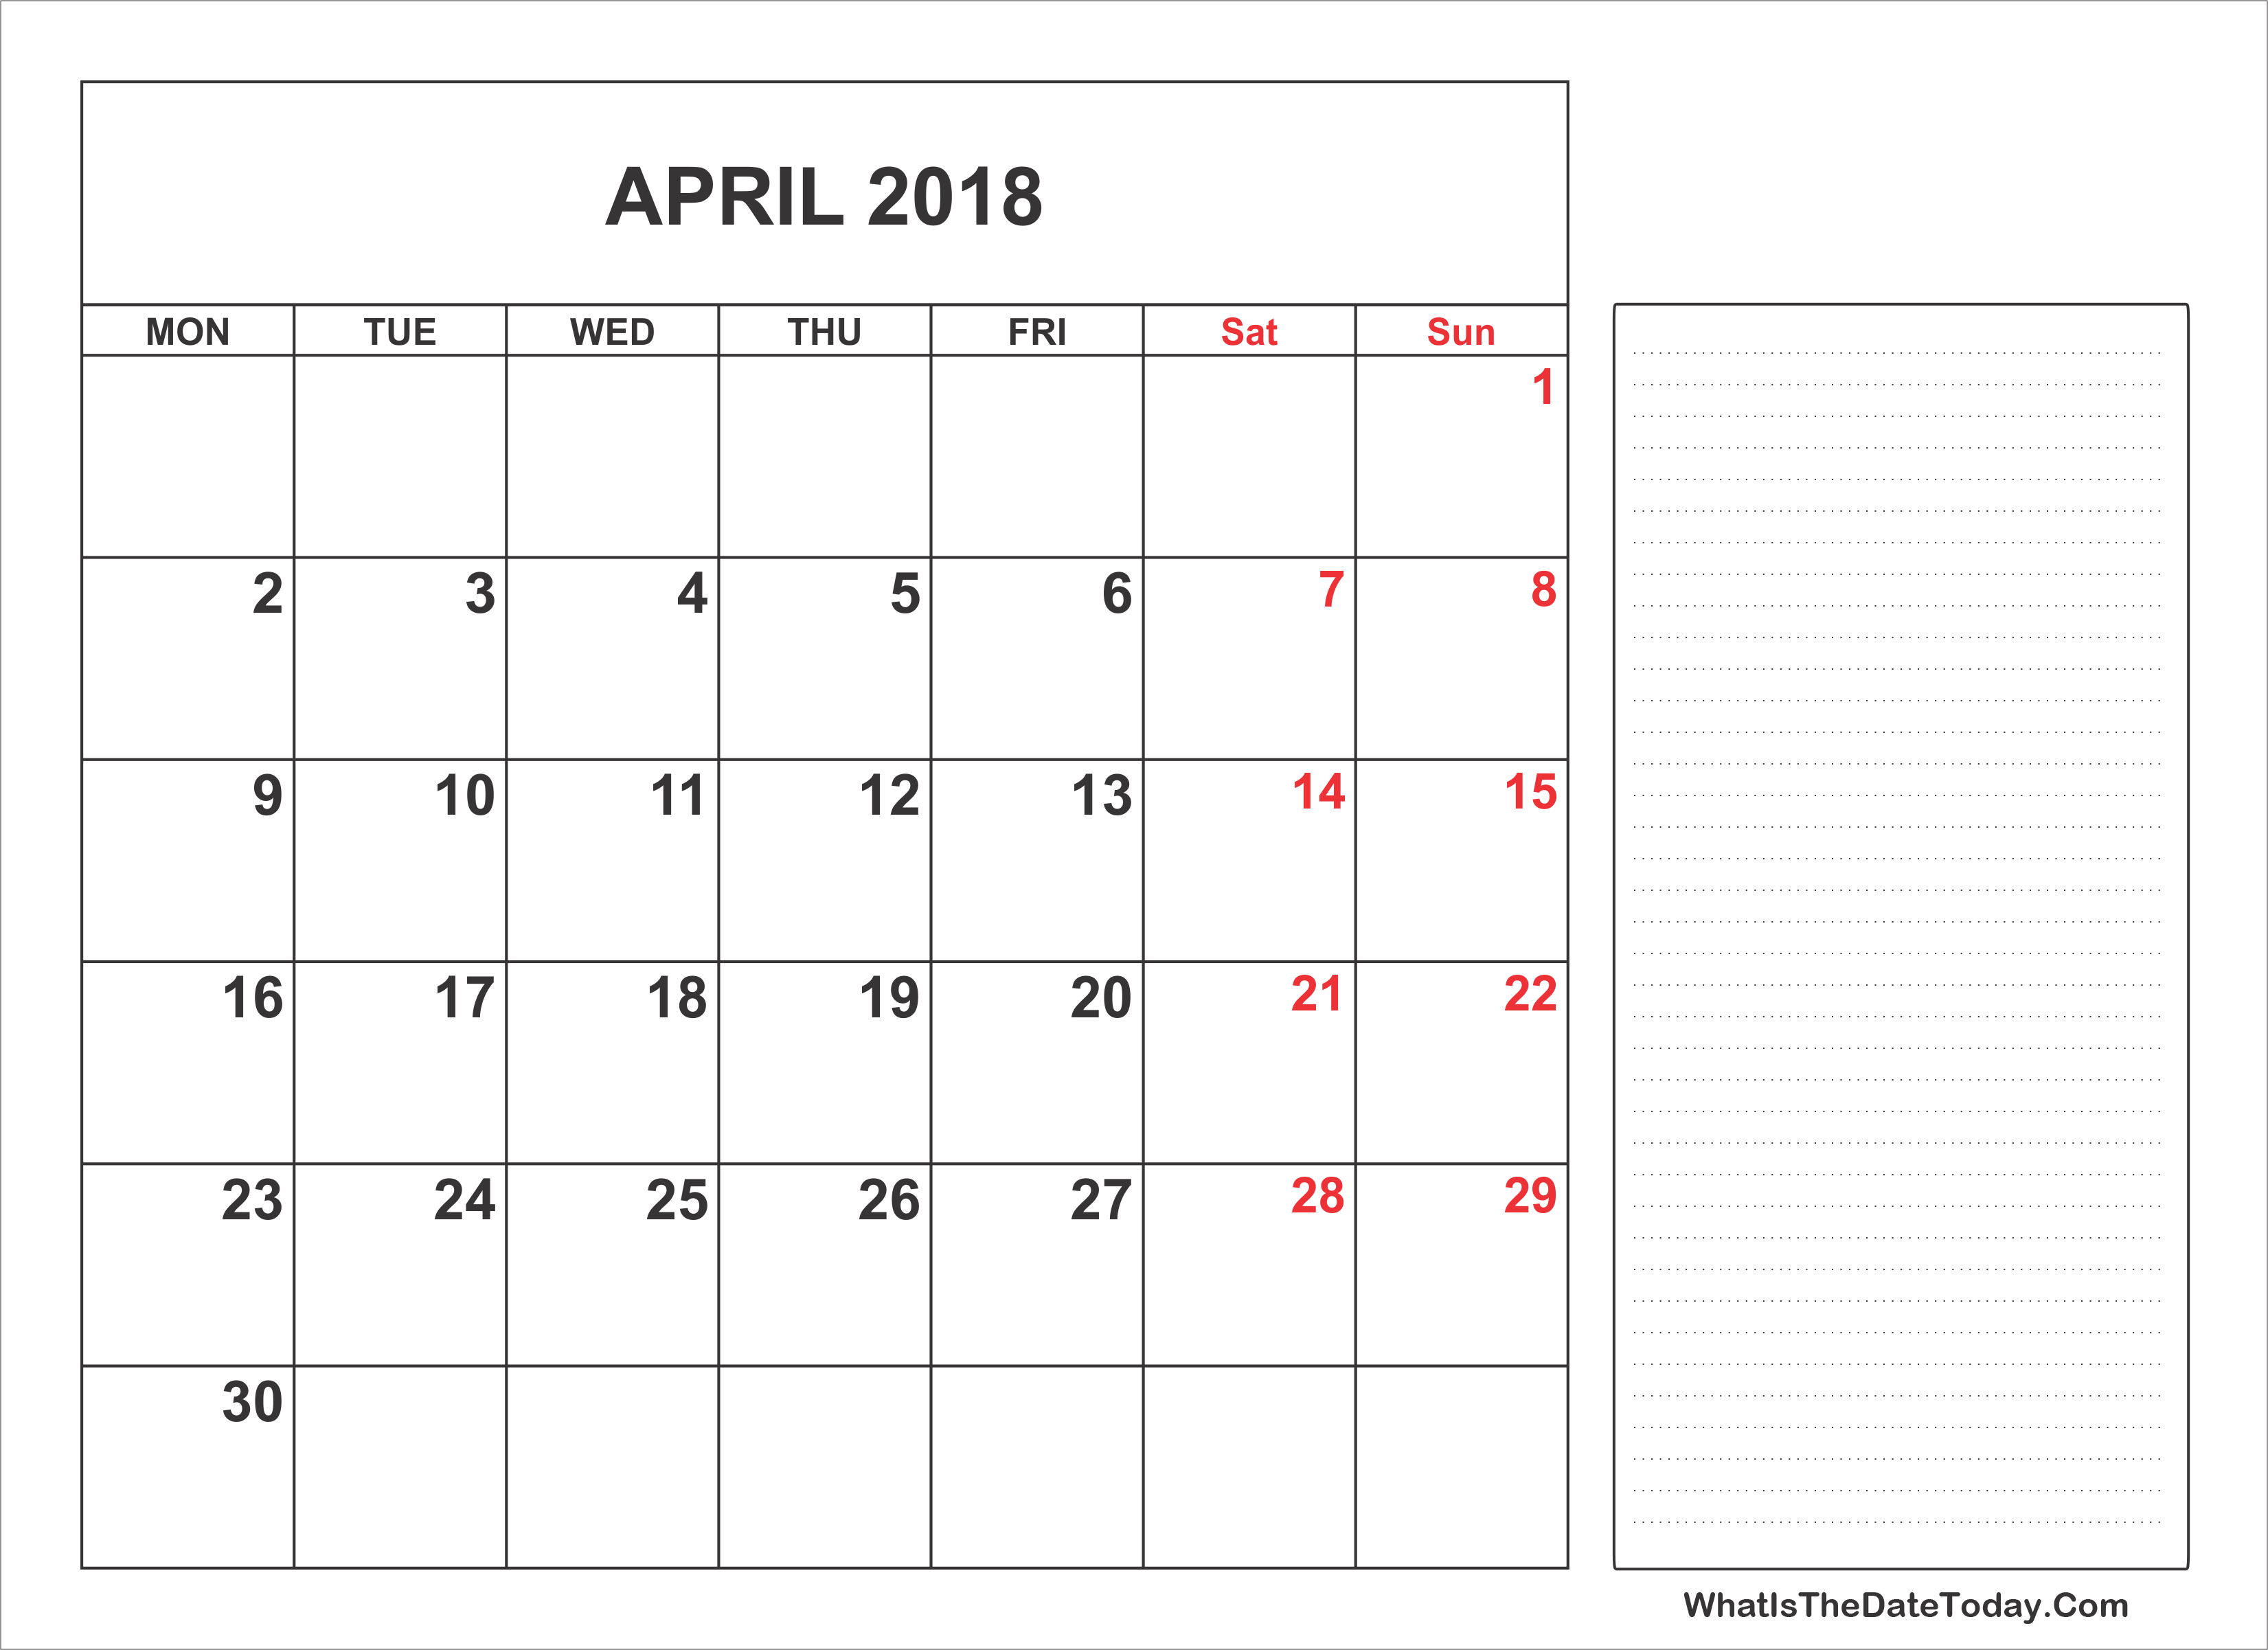 April Calendar With Notes : Printable april calendar with notes